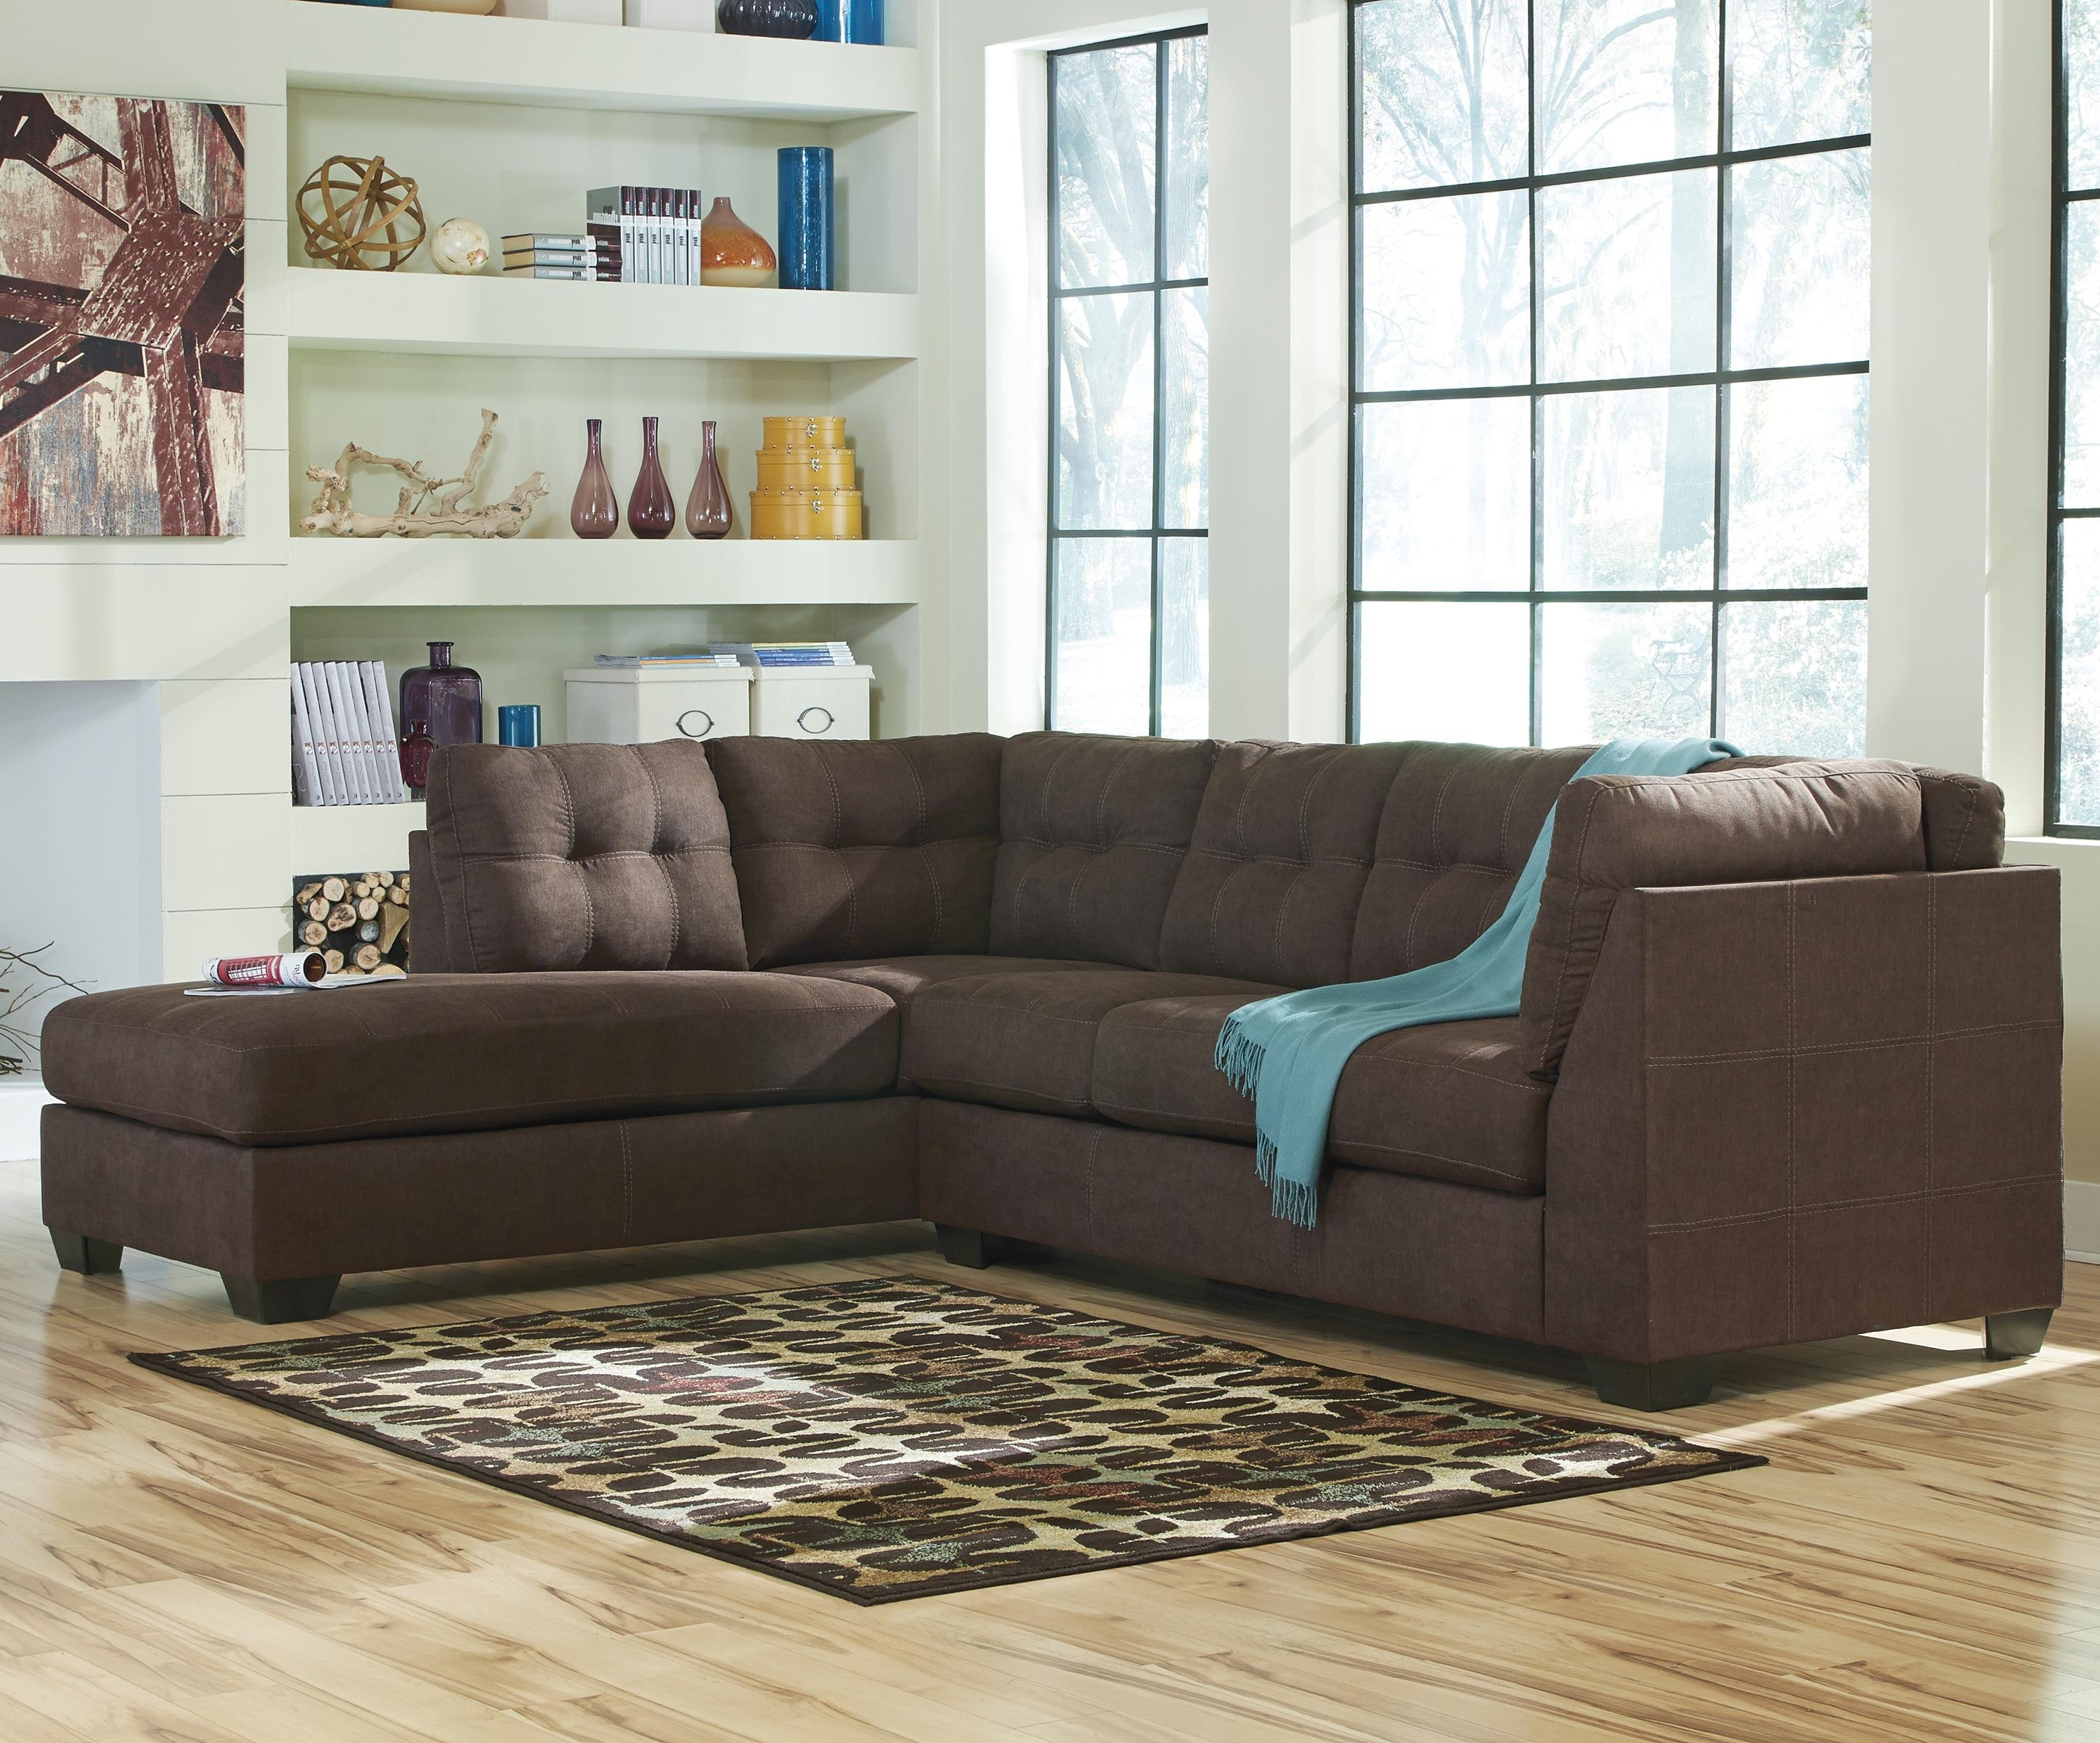 Sectional With 2 Chaises - Tidex pertaining to Tenny Cognac 2 Piece Right Facing Chaise Sectionals With 2 Headrest (Image 22 of 30)